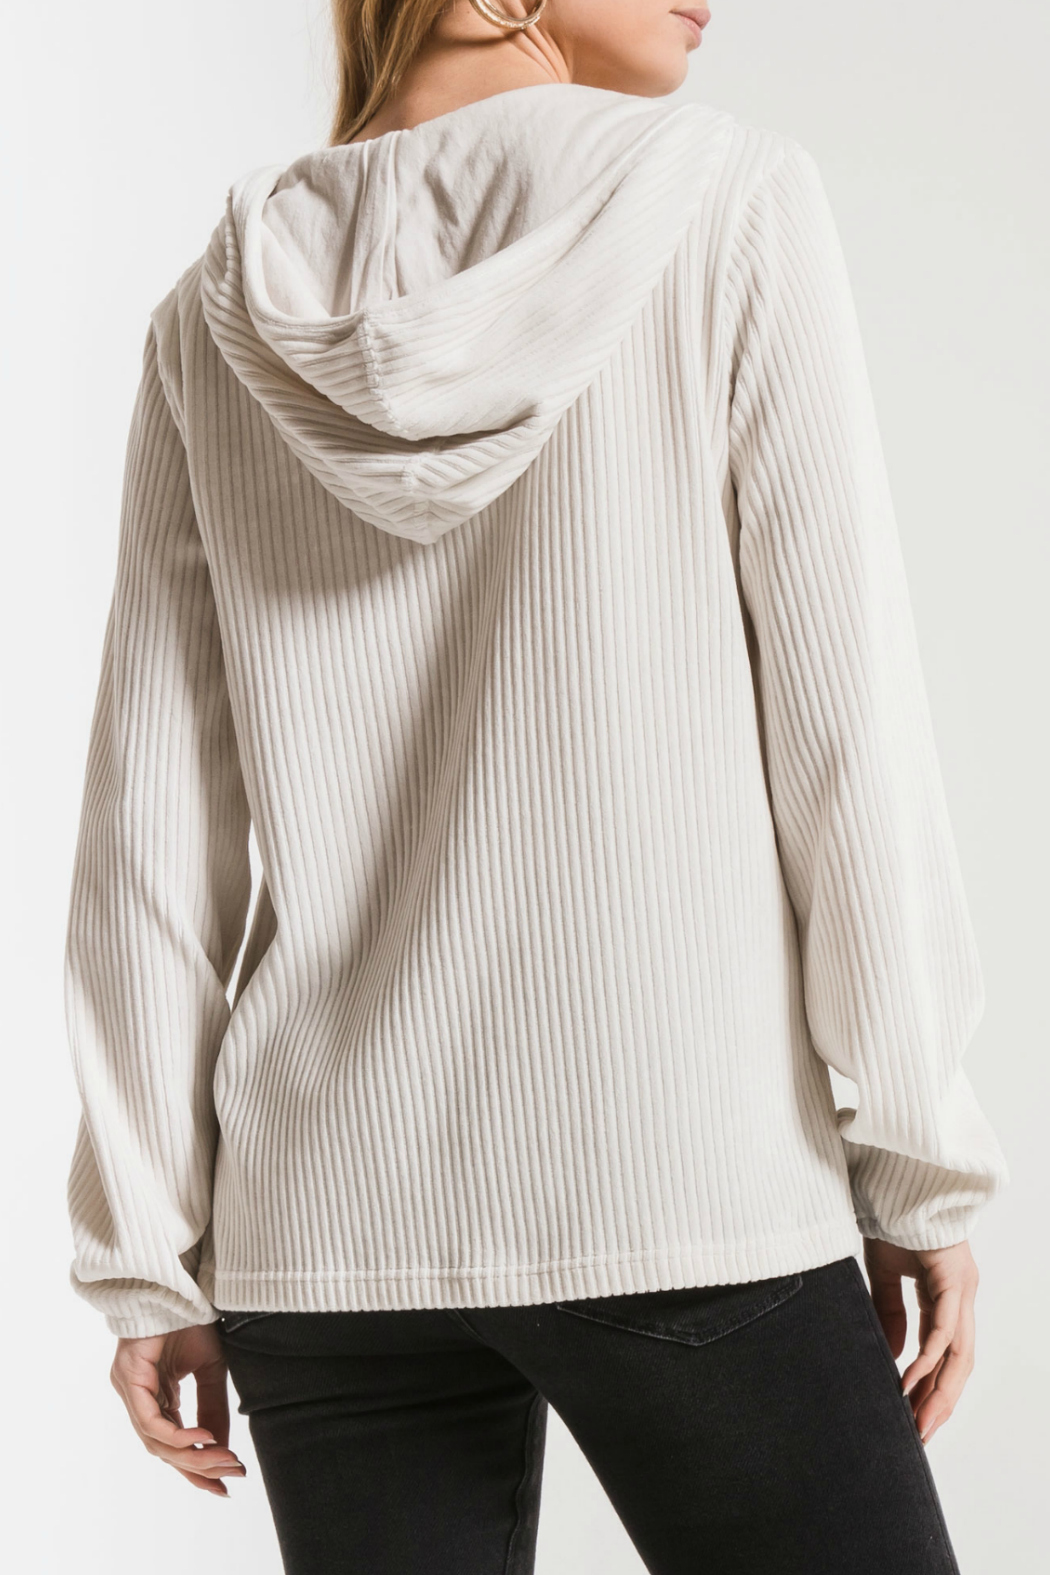 z supply Wide Wale Corduroy Pullover - Side Cropped Image